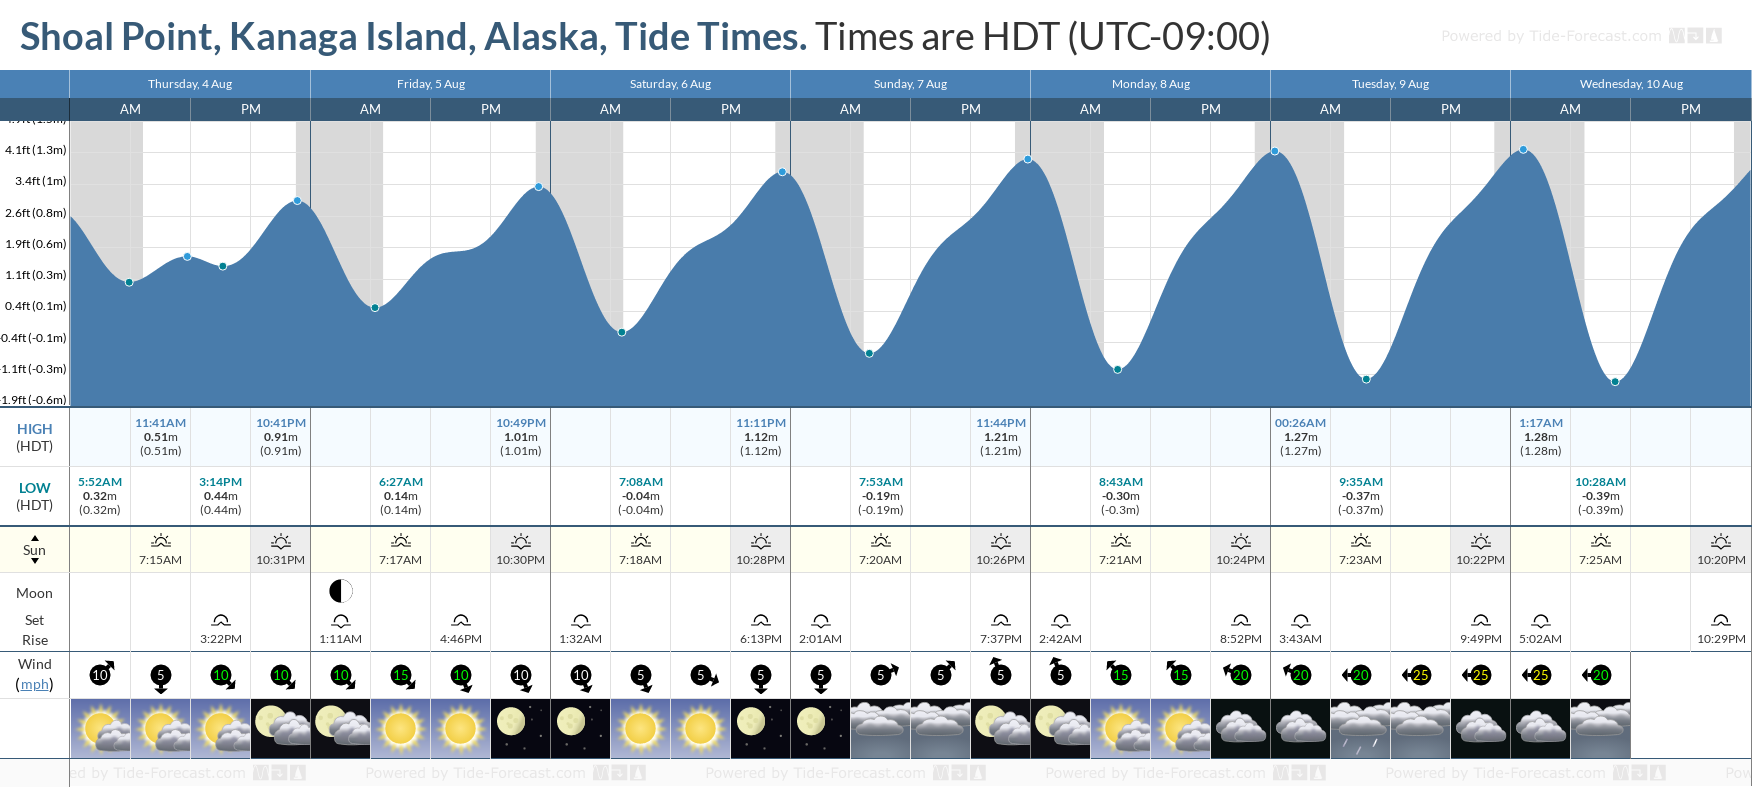 Shoal Point, Kanaga Island, Alaska Tide Chart including high and low tide tide times for the next 7 days